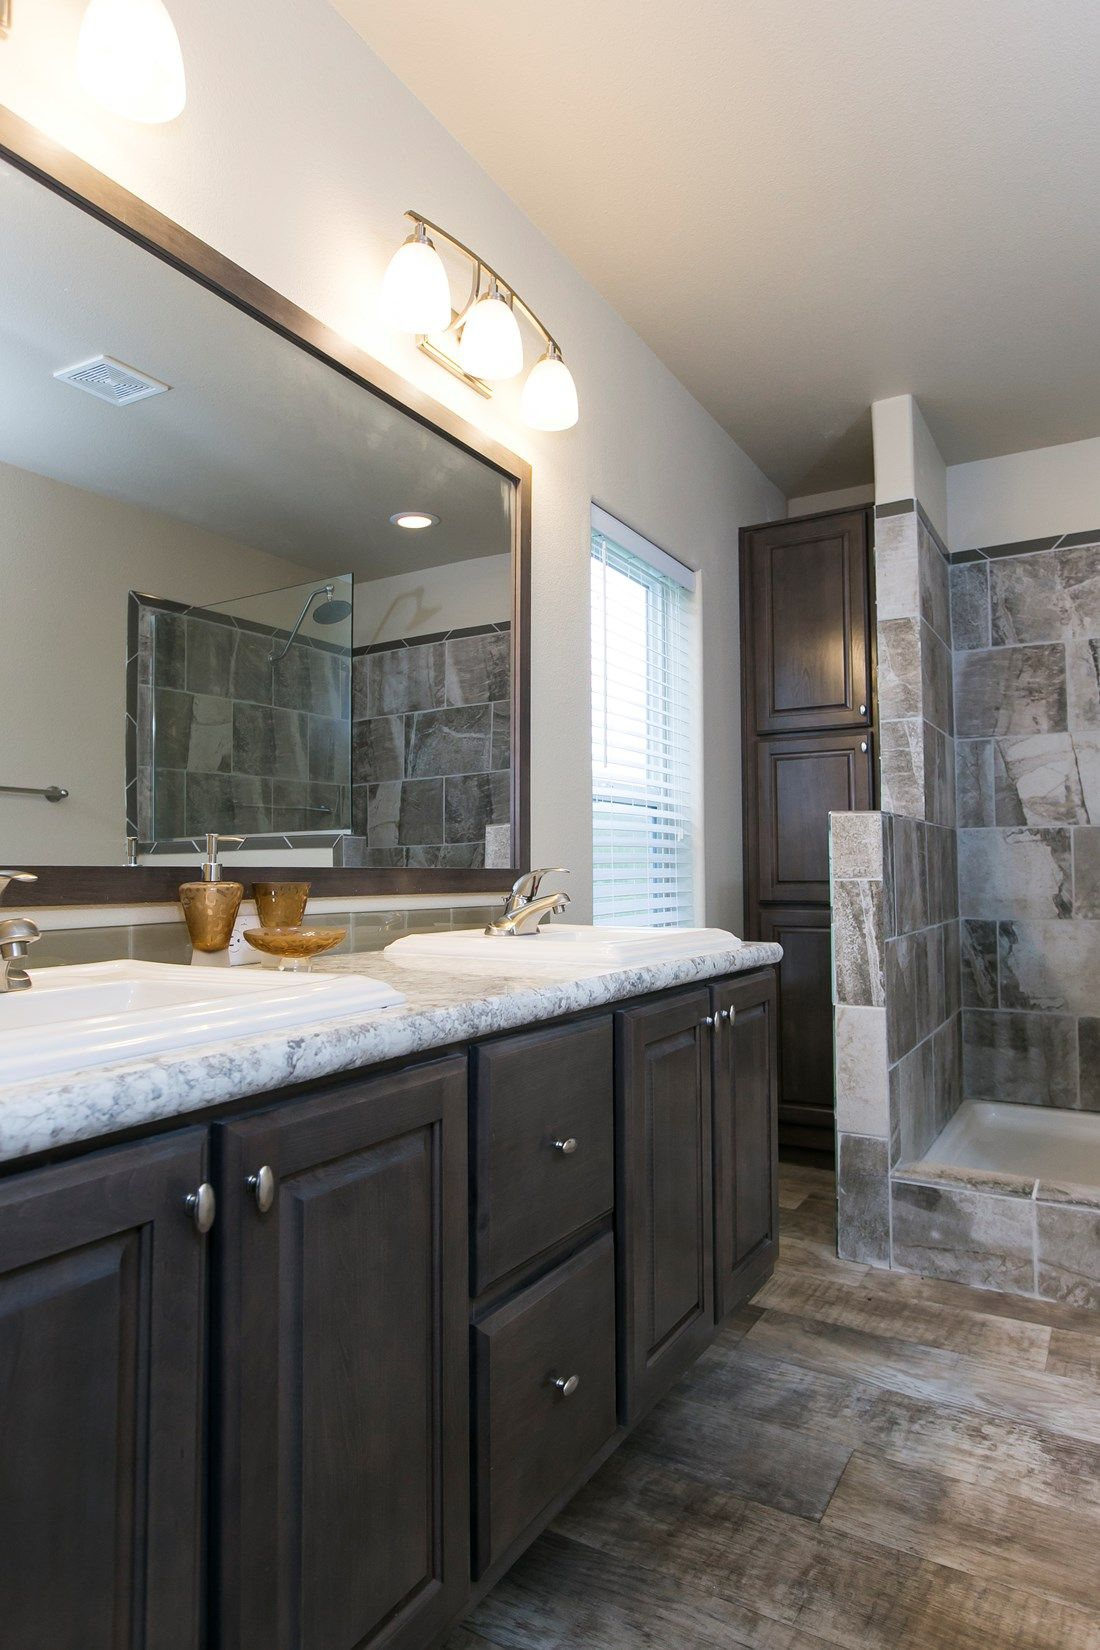 The 2023 COLUMBIA RIVER Master Bathroom. This Manufactured Mobile Home features 3 bedrooms and 2 baths.